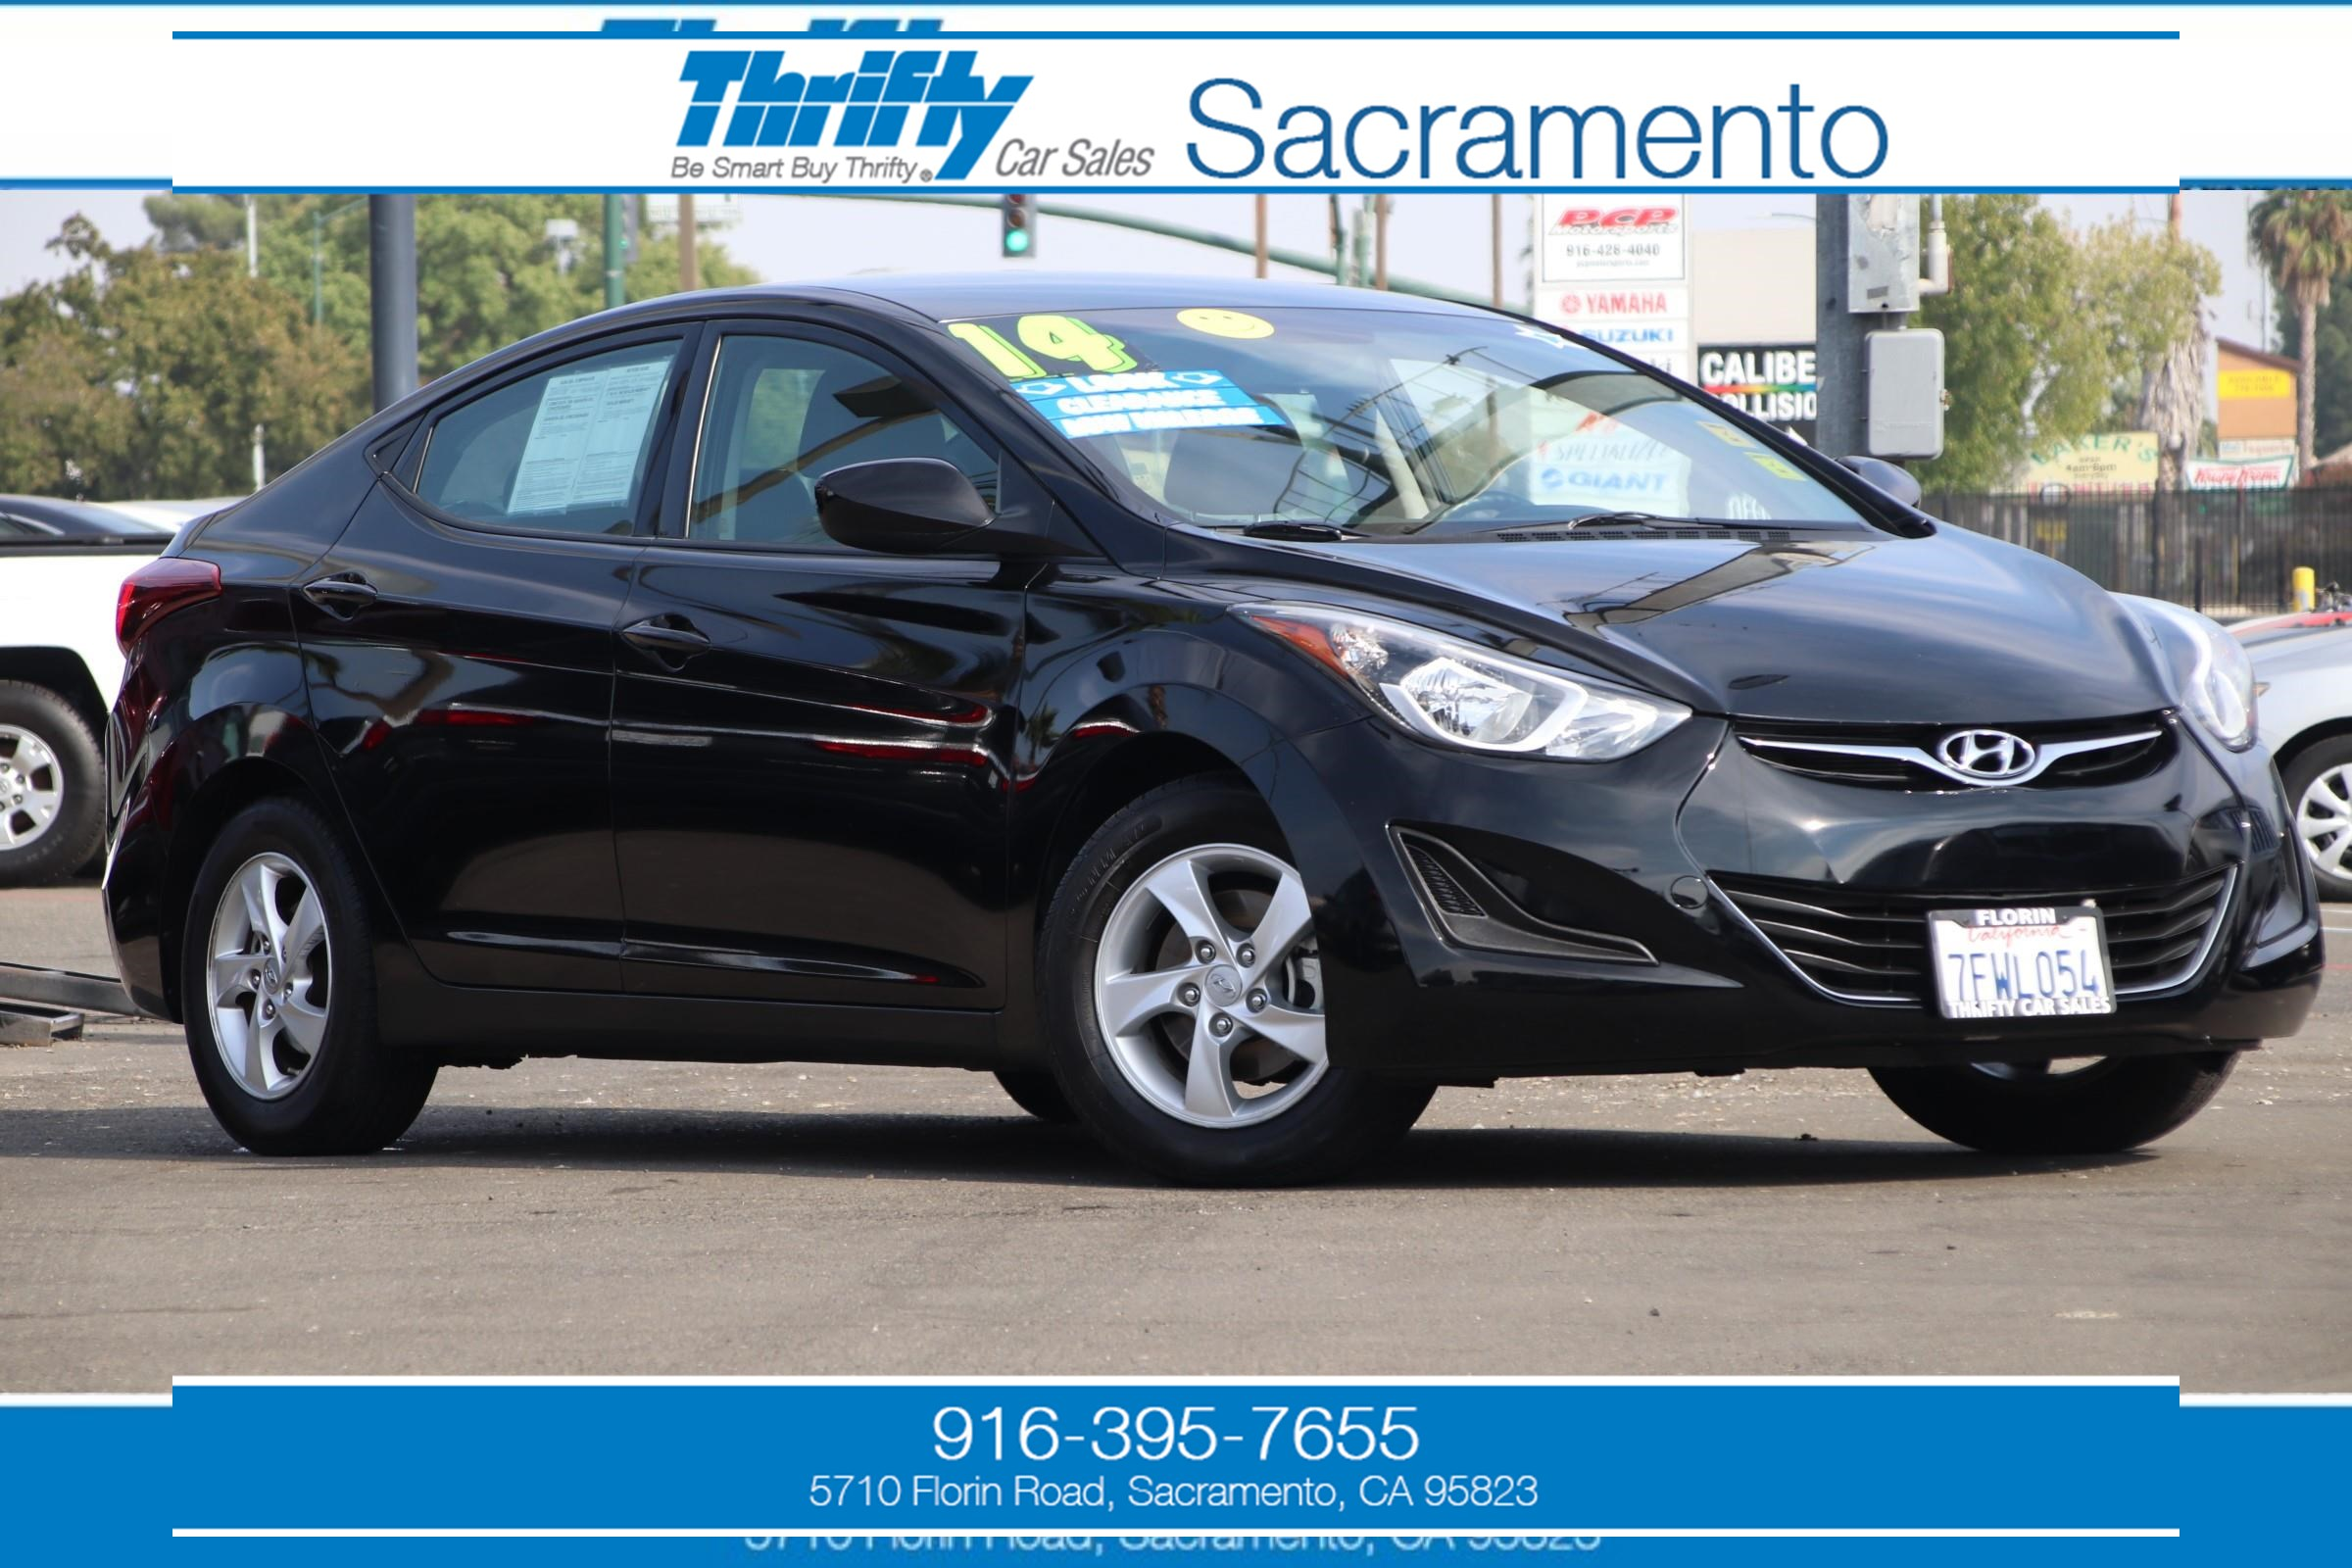 cars for sale sacramento ca used pickup trucks thrifty car sales cars for sale sacramento ca used